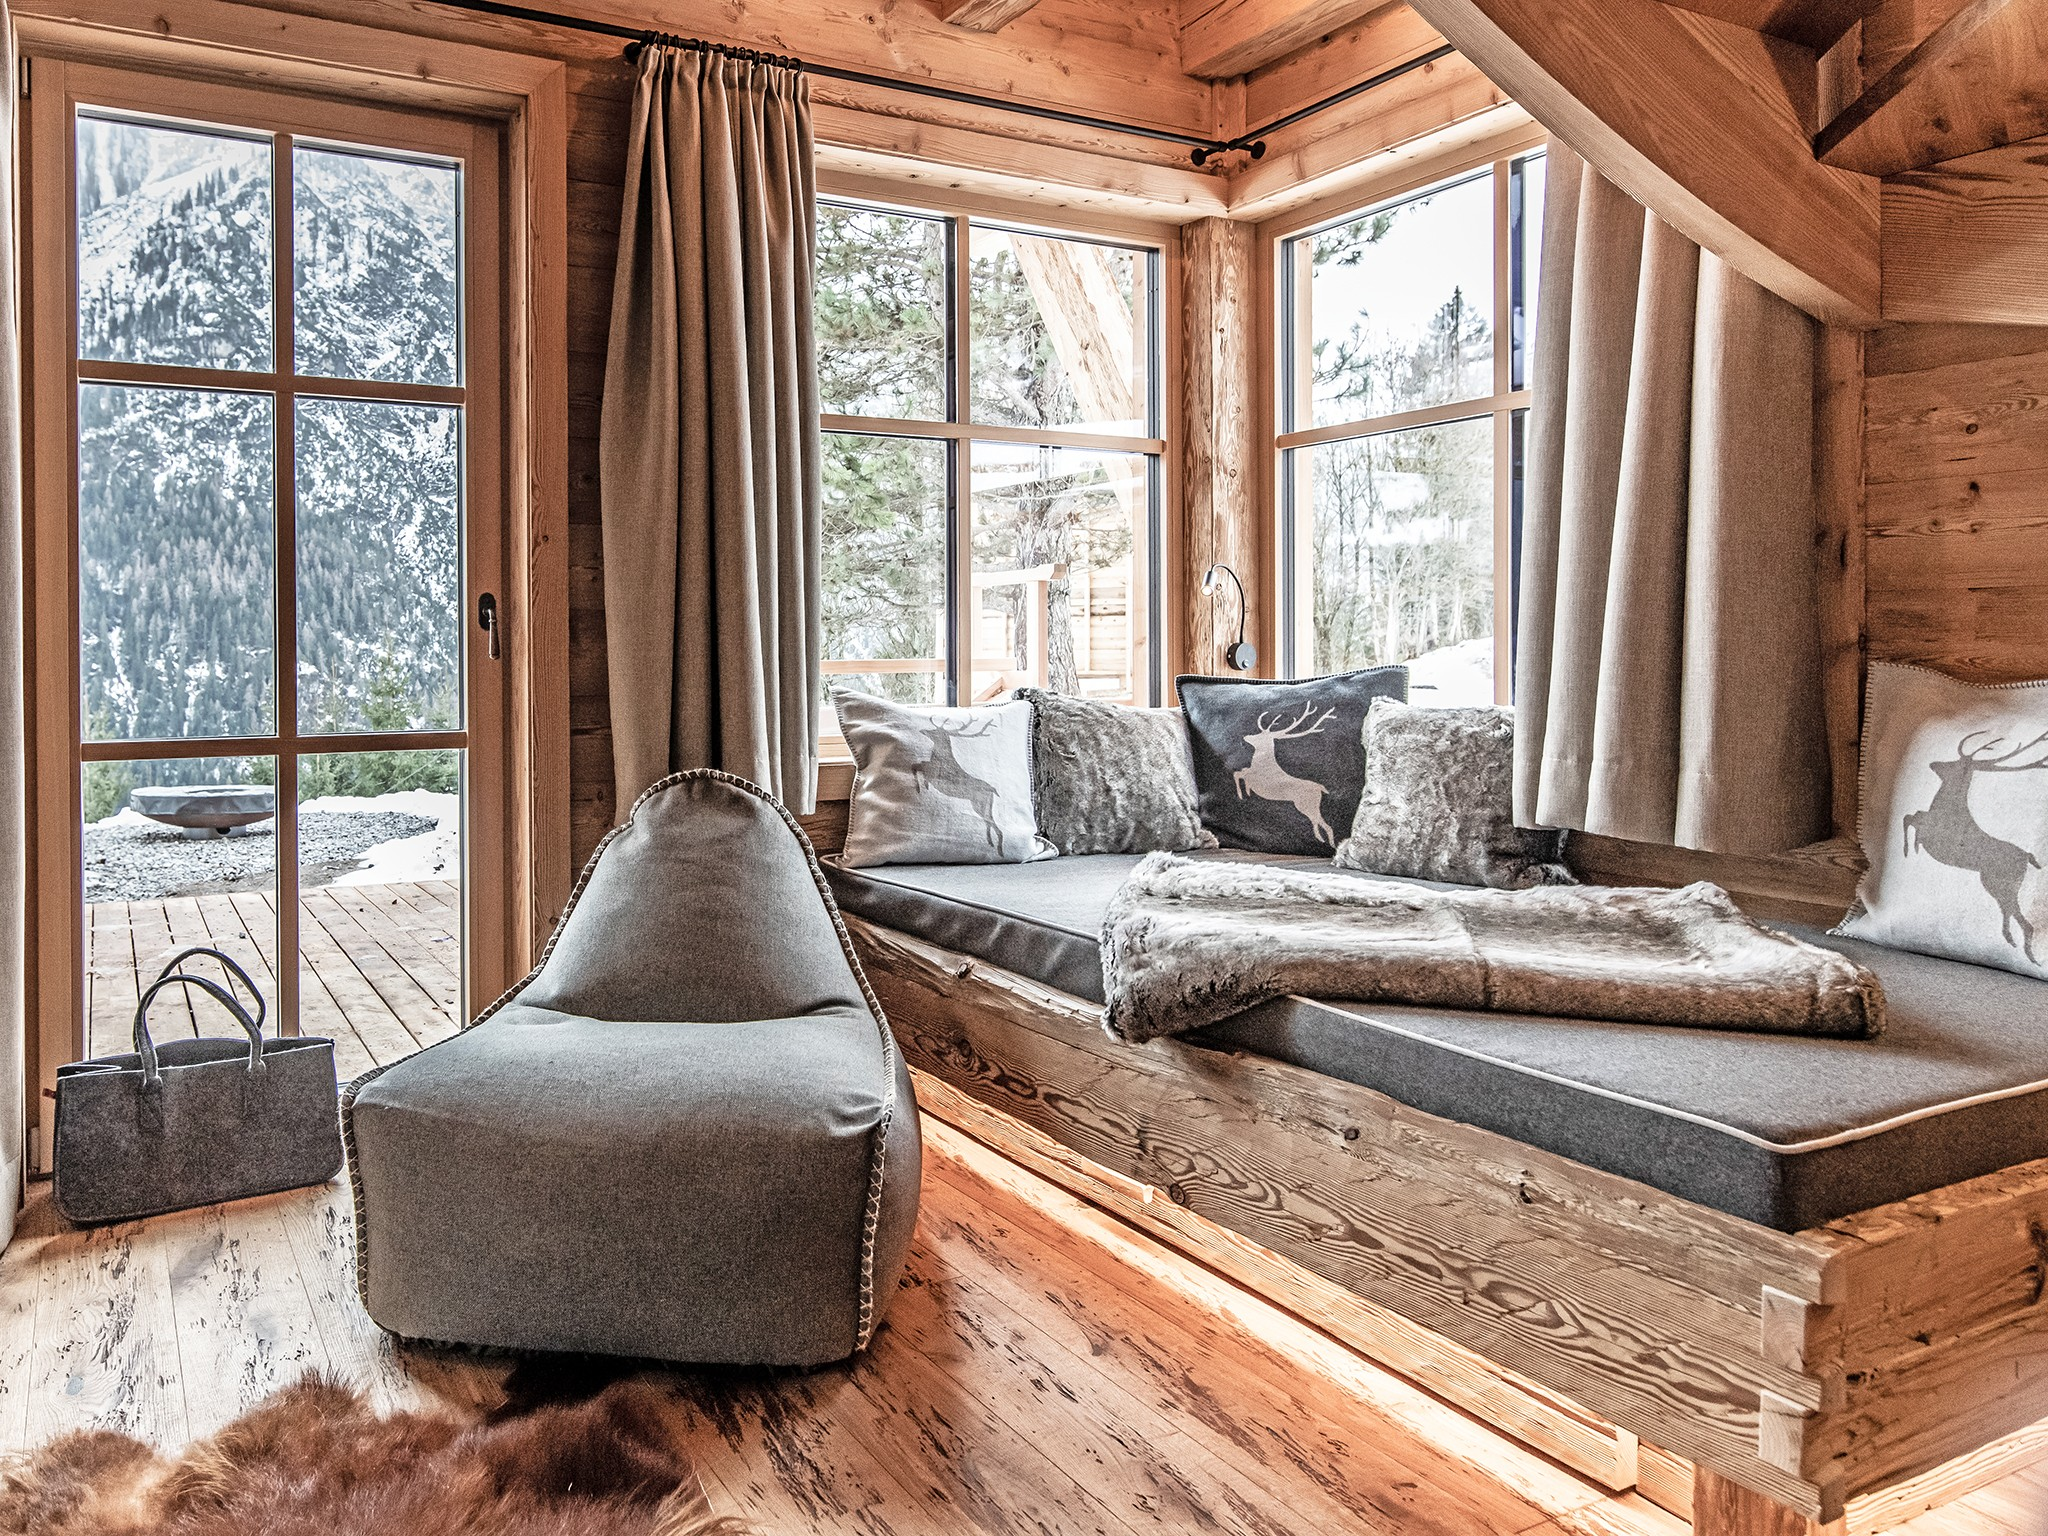 Lech-Chalet Berg - living room